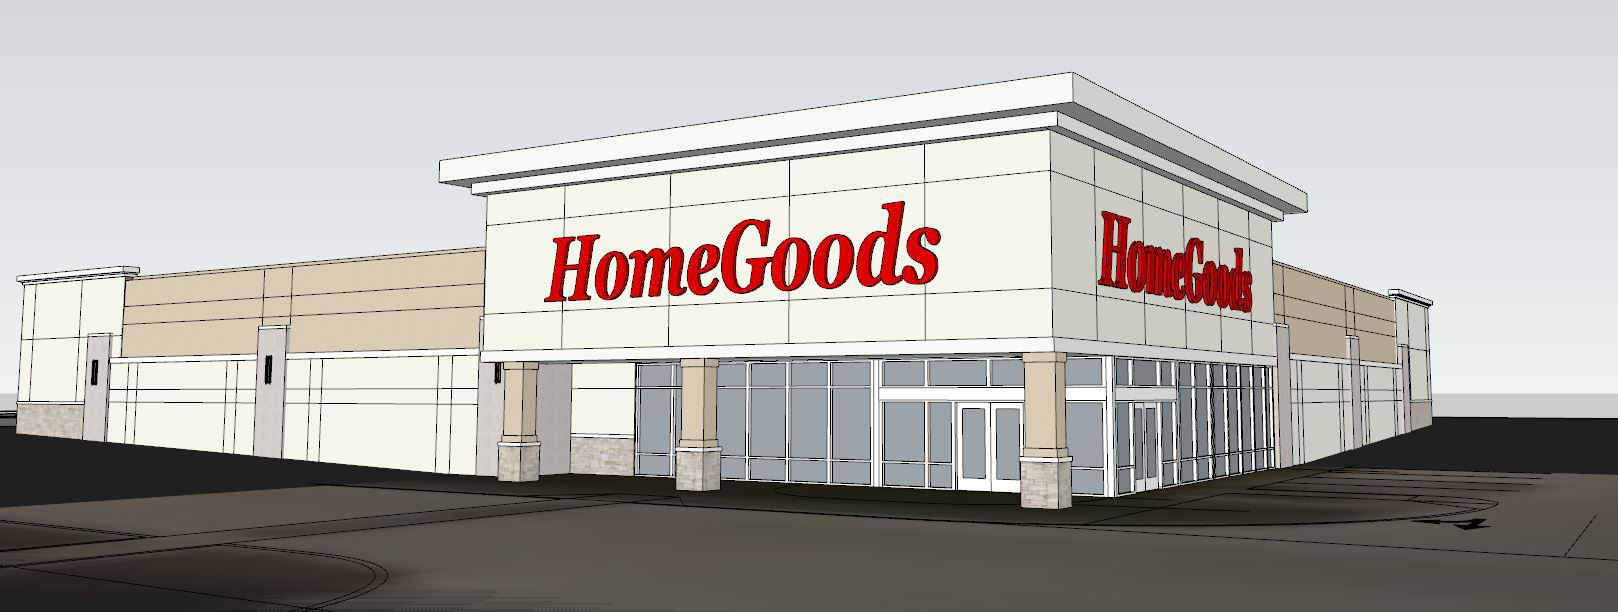 Elmore Marketplace, Davenport, Will Welcome A New HomeGoods Store In The  Fall. It Will Be The Retaileru0027s First Quad City Location.